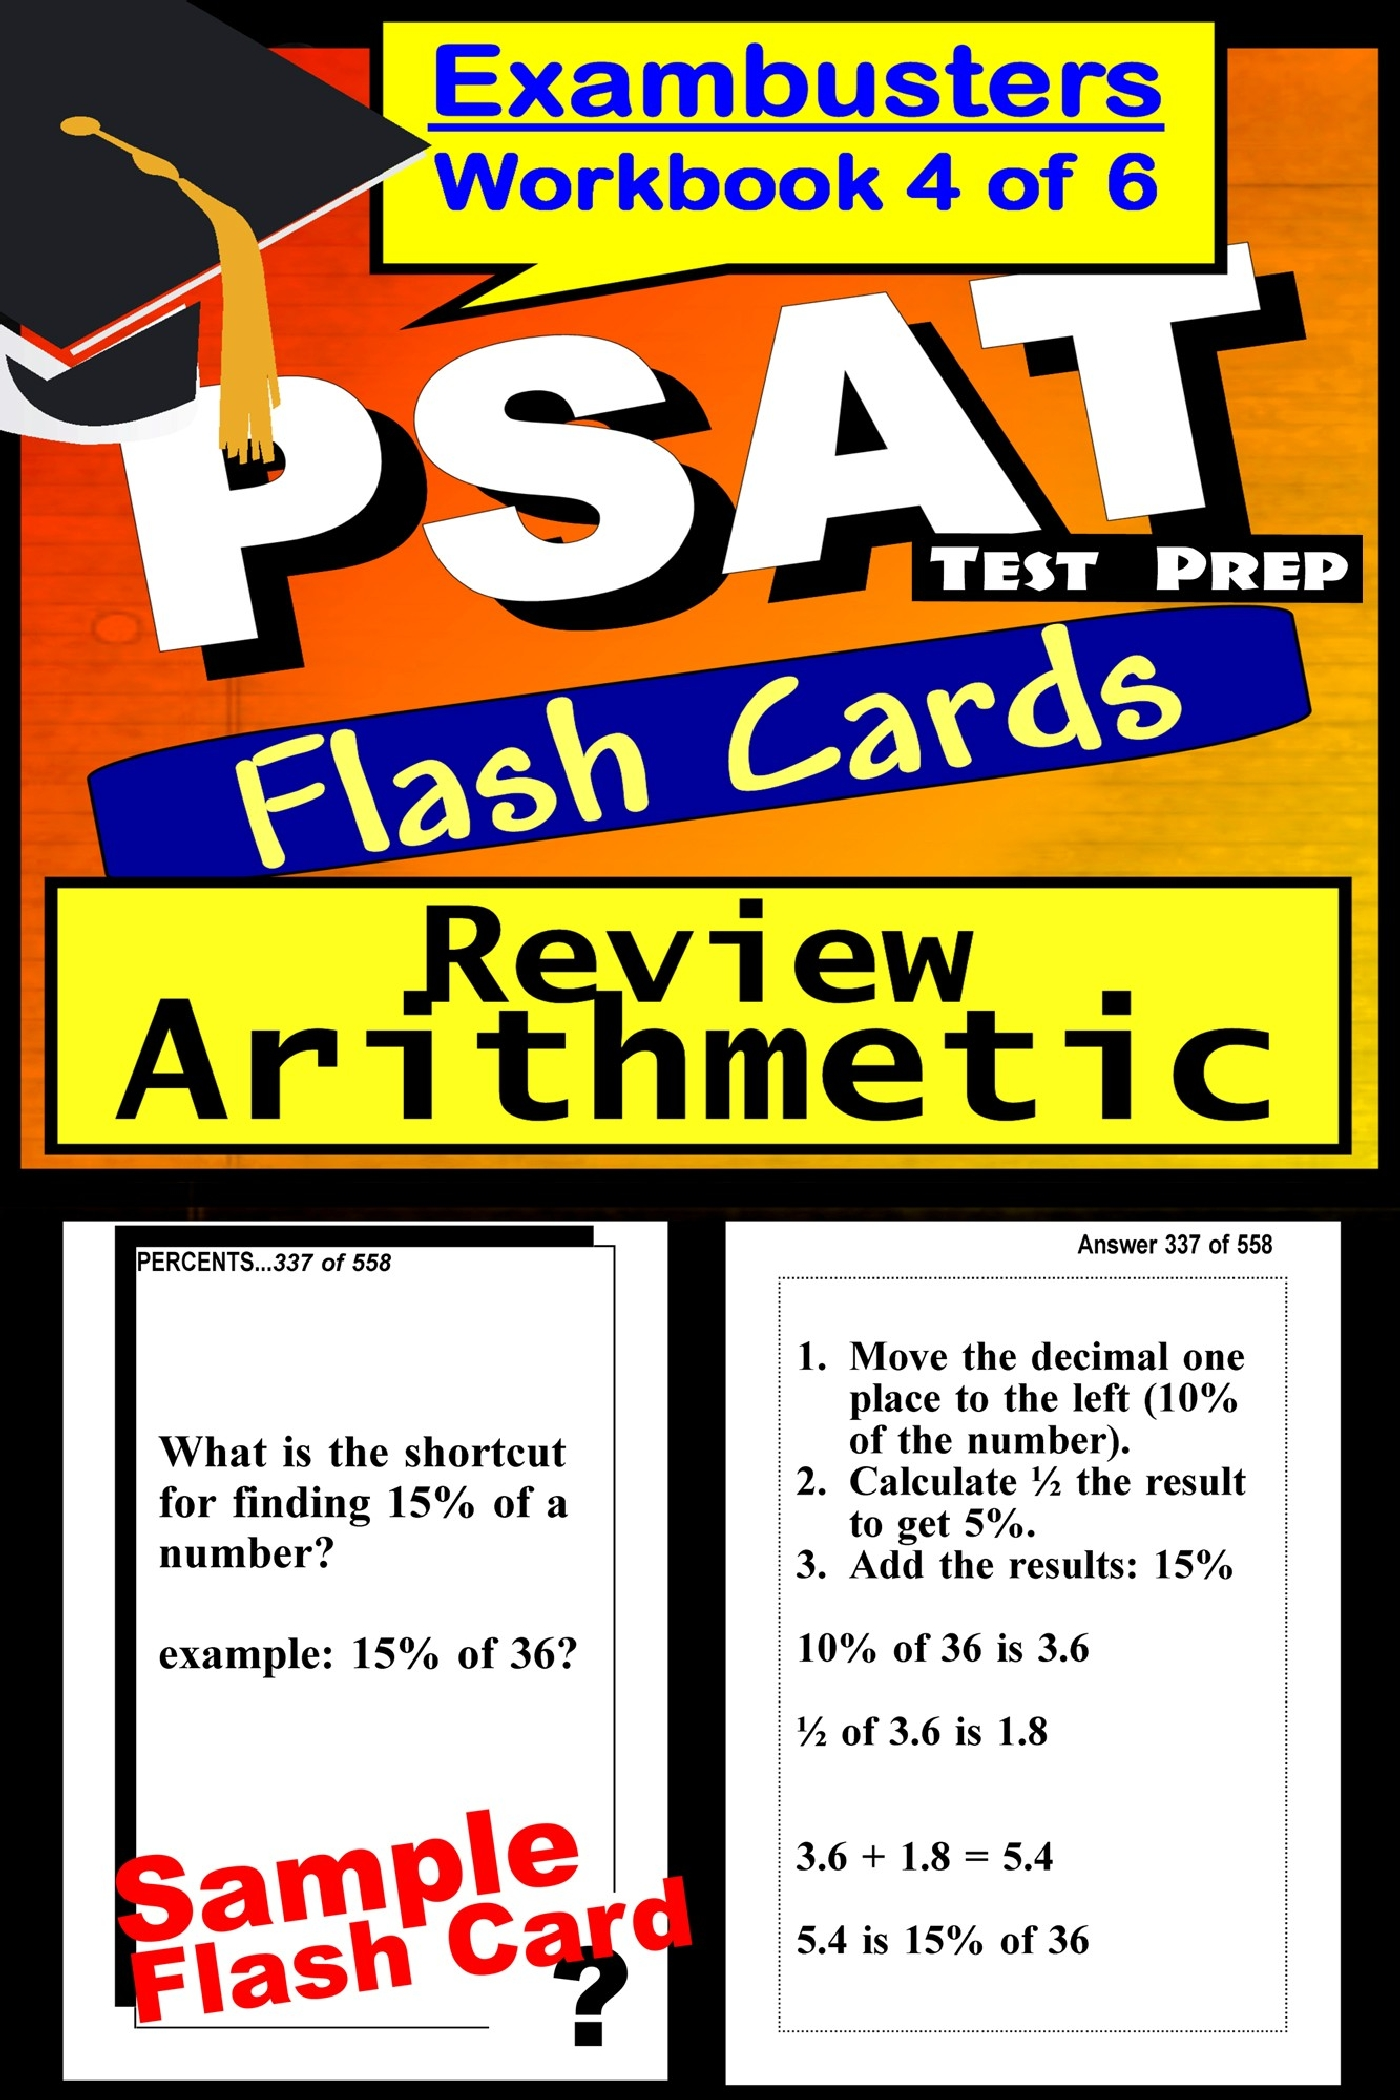 PSAT Test Prep Arithmetic Review--Exambusters Flash Cards--Workbook 4 of 6: PSAT Exam Study Guide